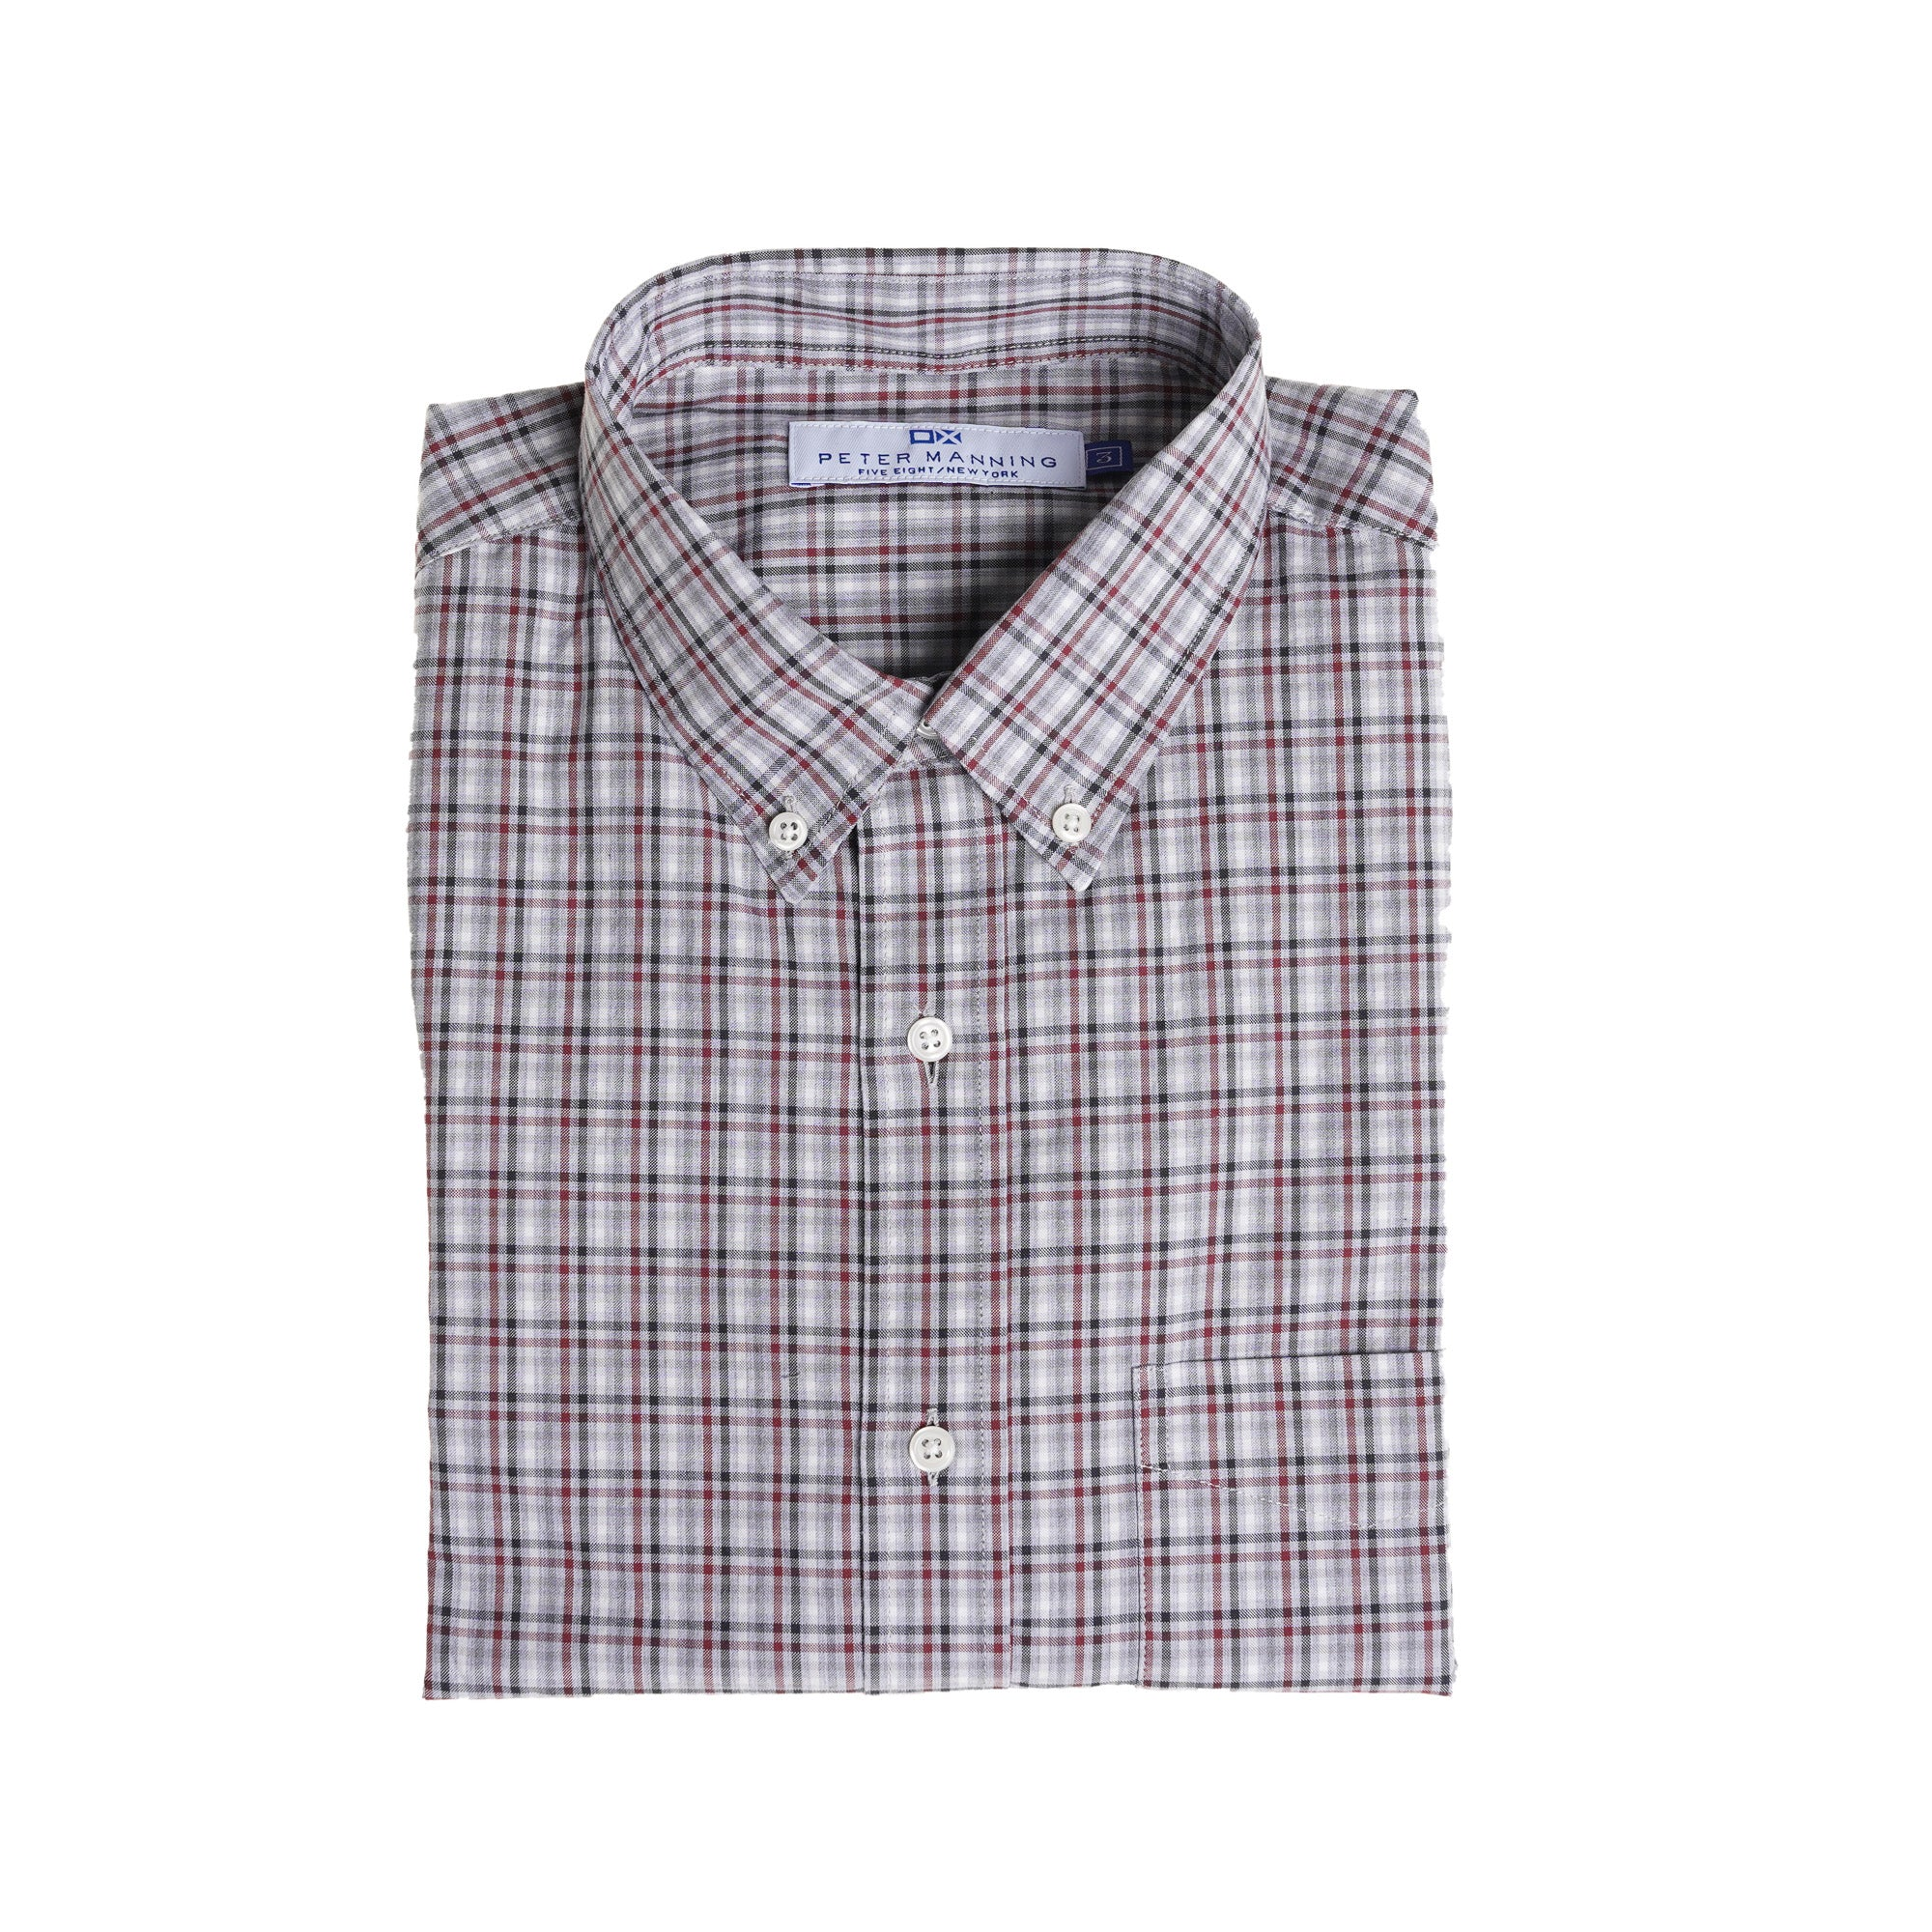 Everyday Oxford -  Grey Red Tattersall